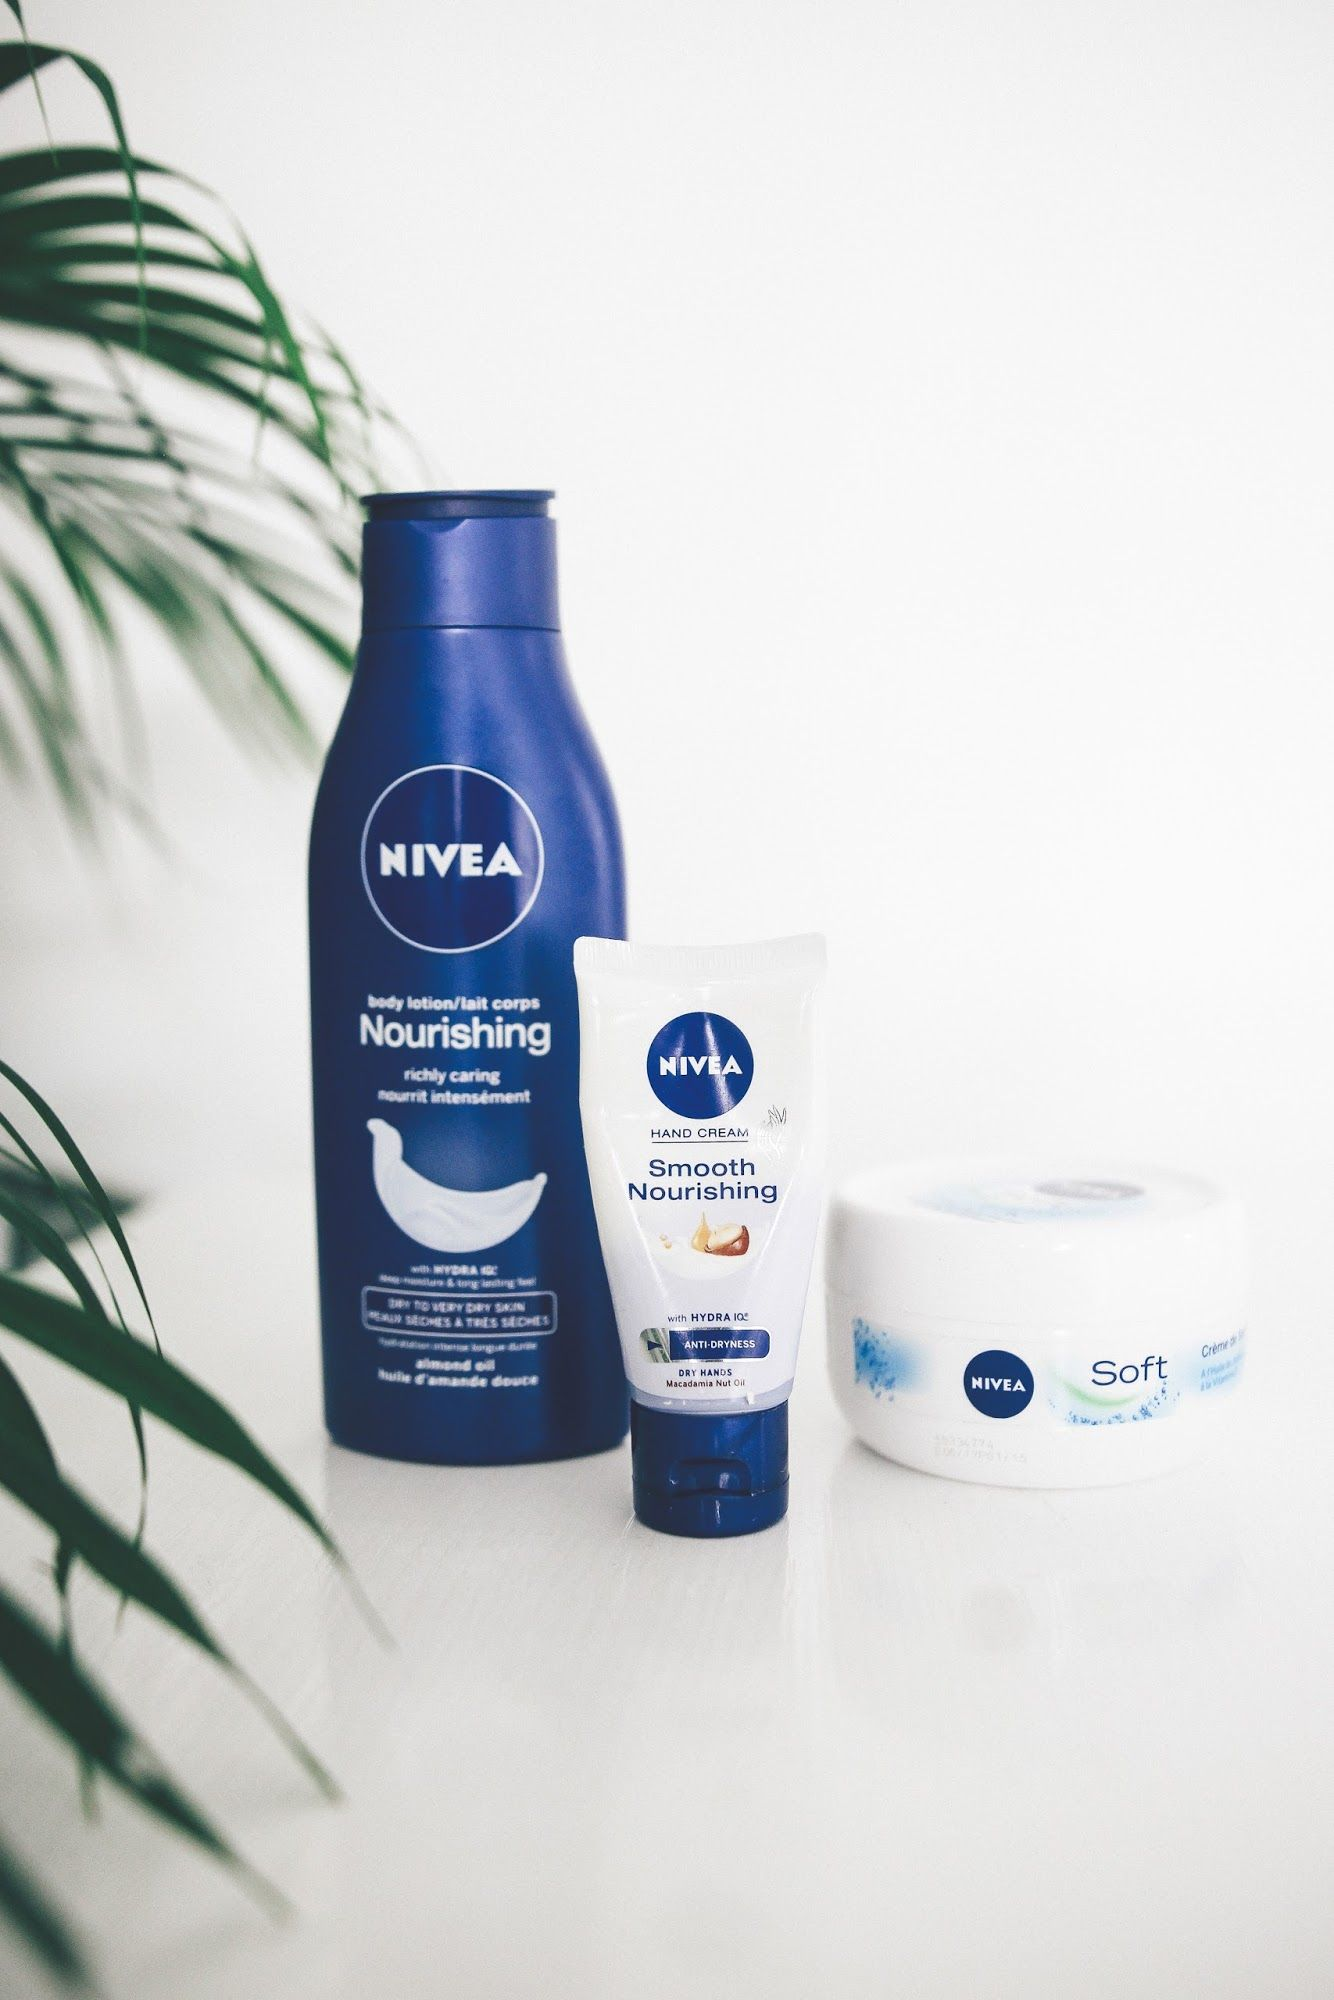 NIVEA BODY CARE Body care, Nivea, Body